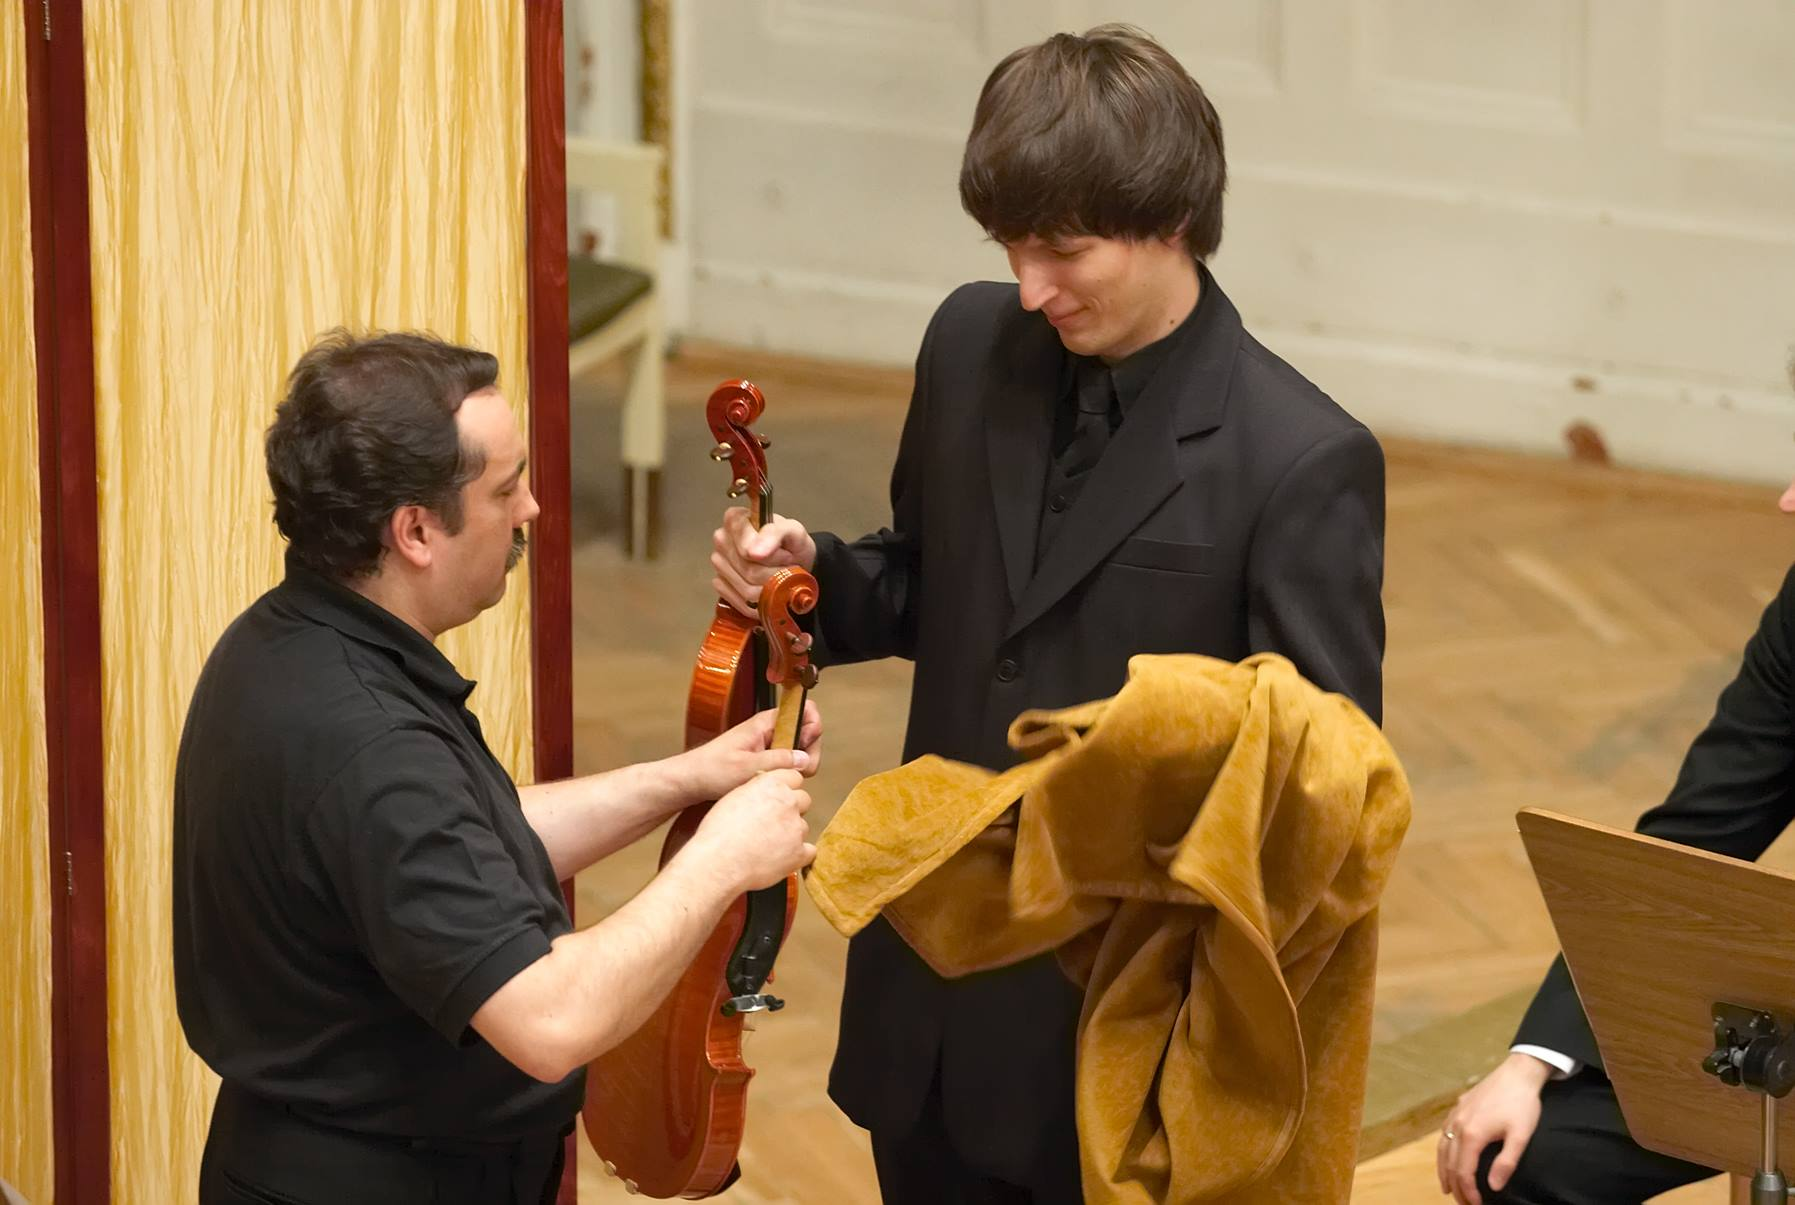 Bartosz Bryła receiving another violin to test at the final stage of the competition.